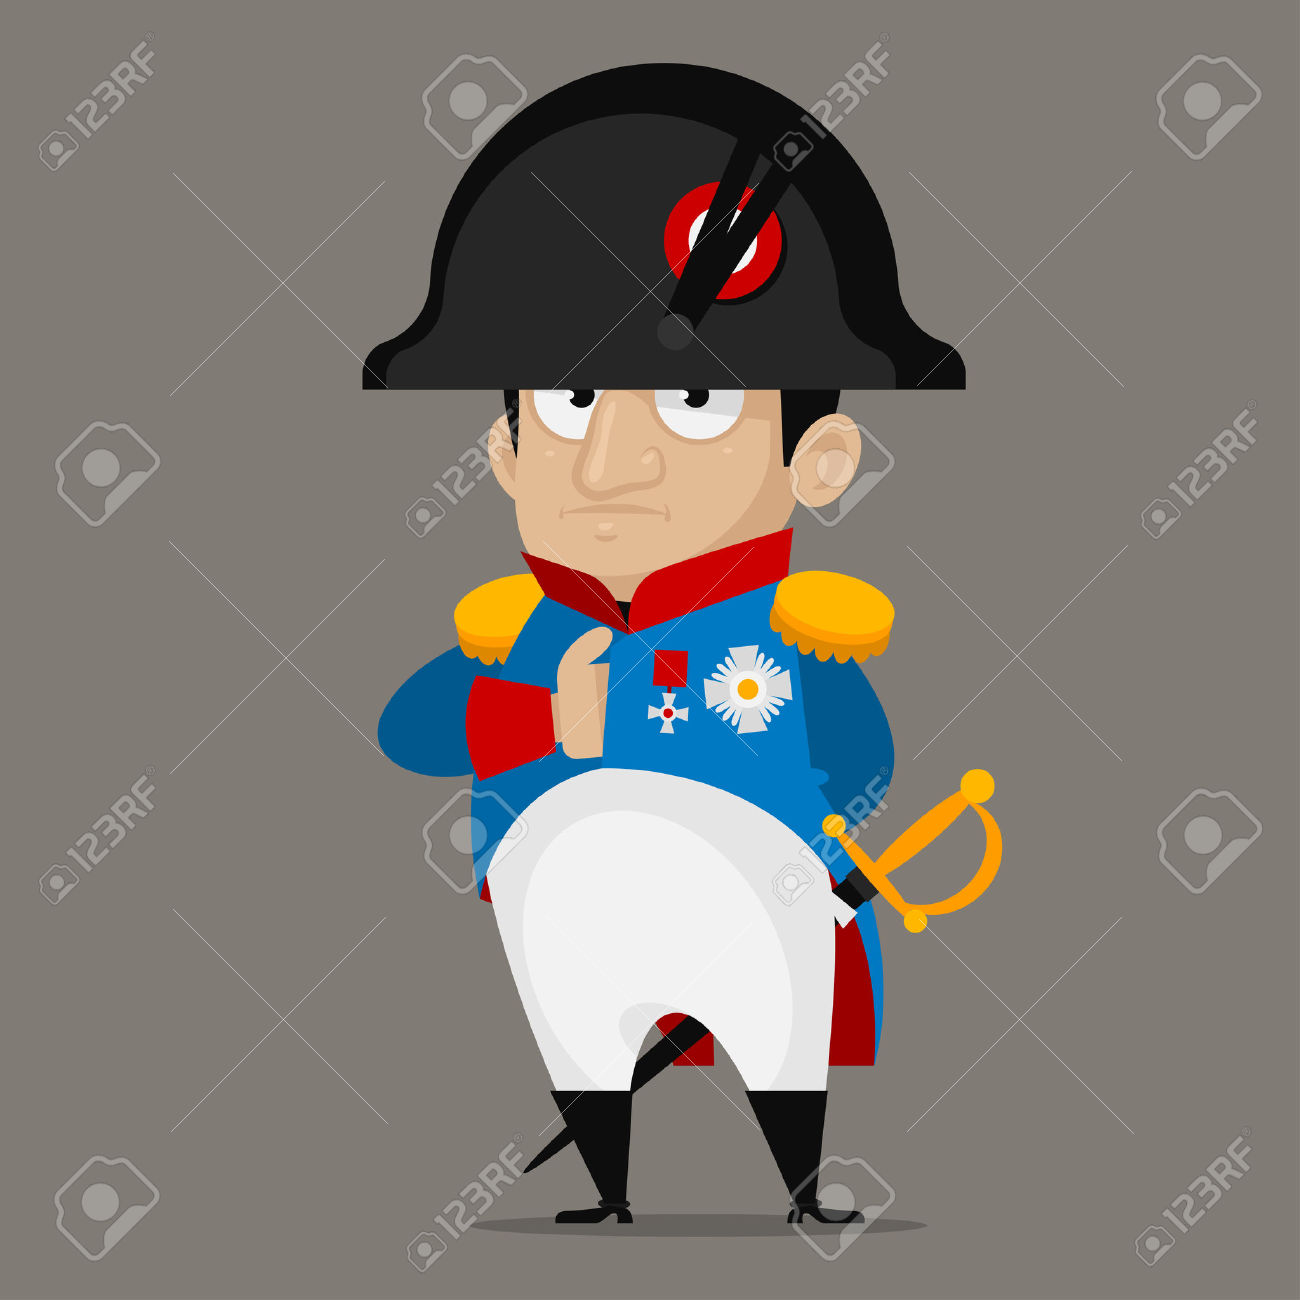 Napoleon Bonaparte Cartoon Character Royalty Free Cliparts.